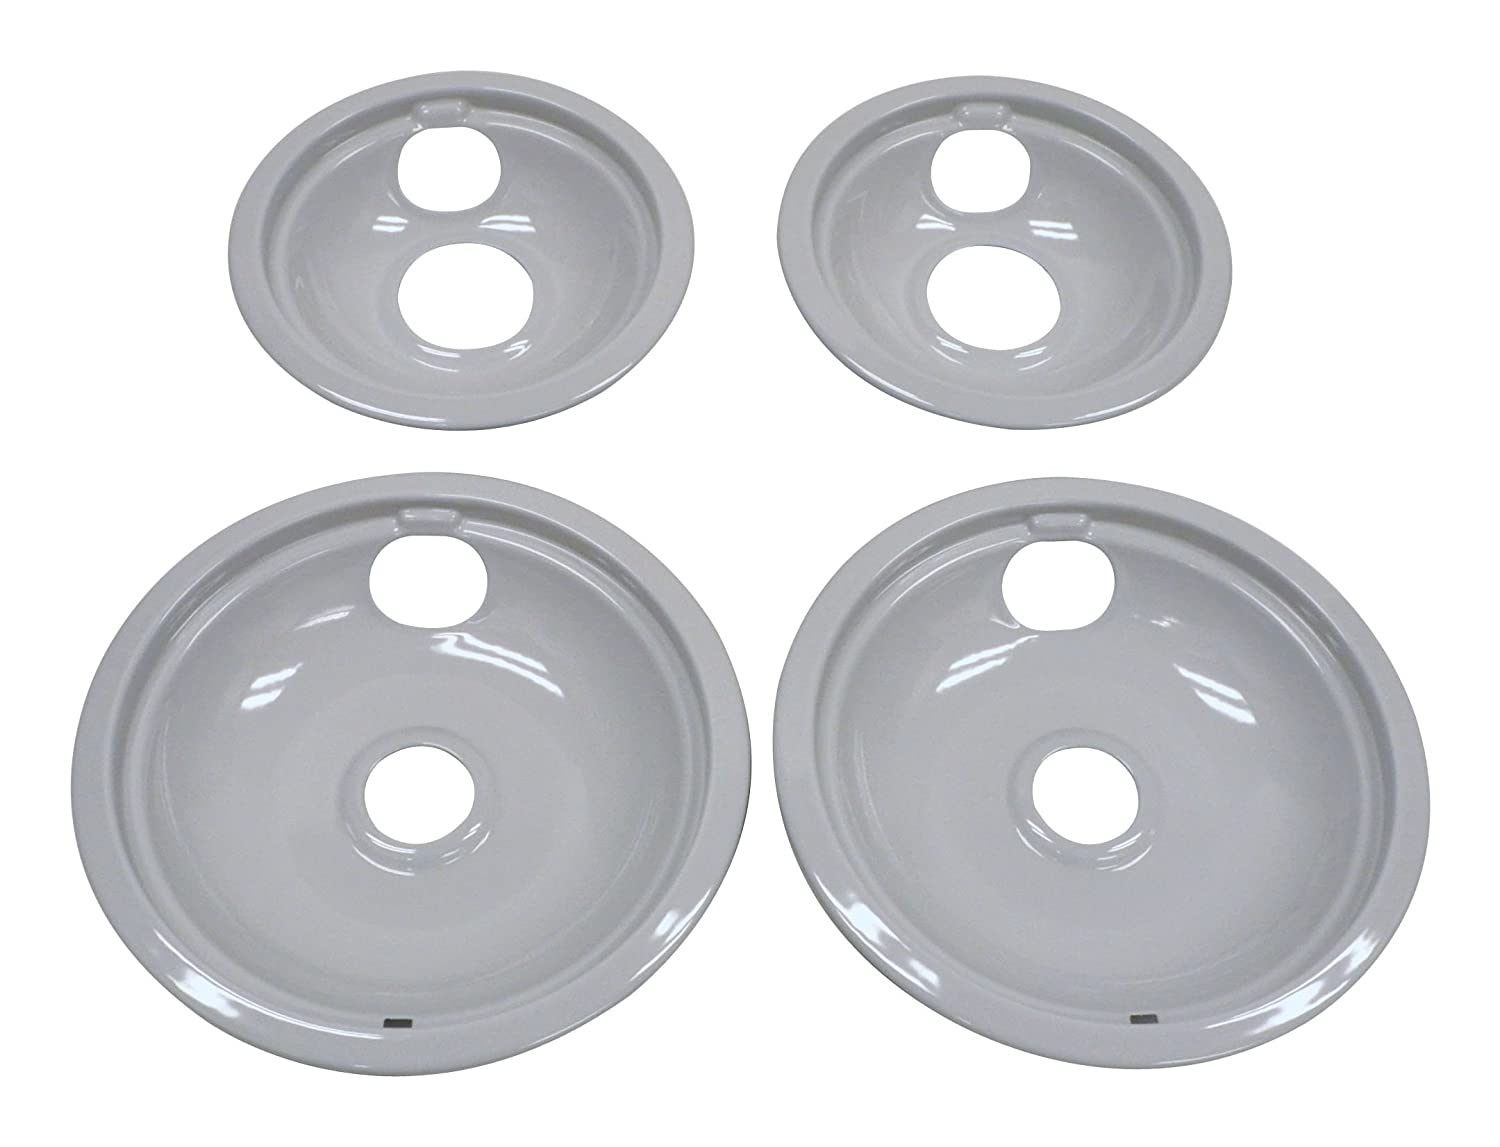 Whirlpool W10291024 Drip Pan Kit, Grey